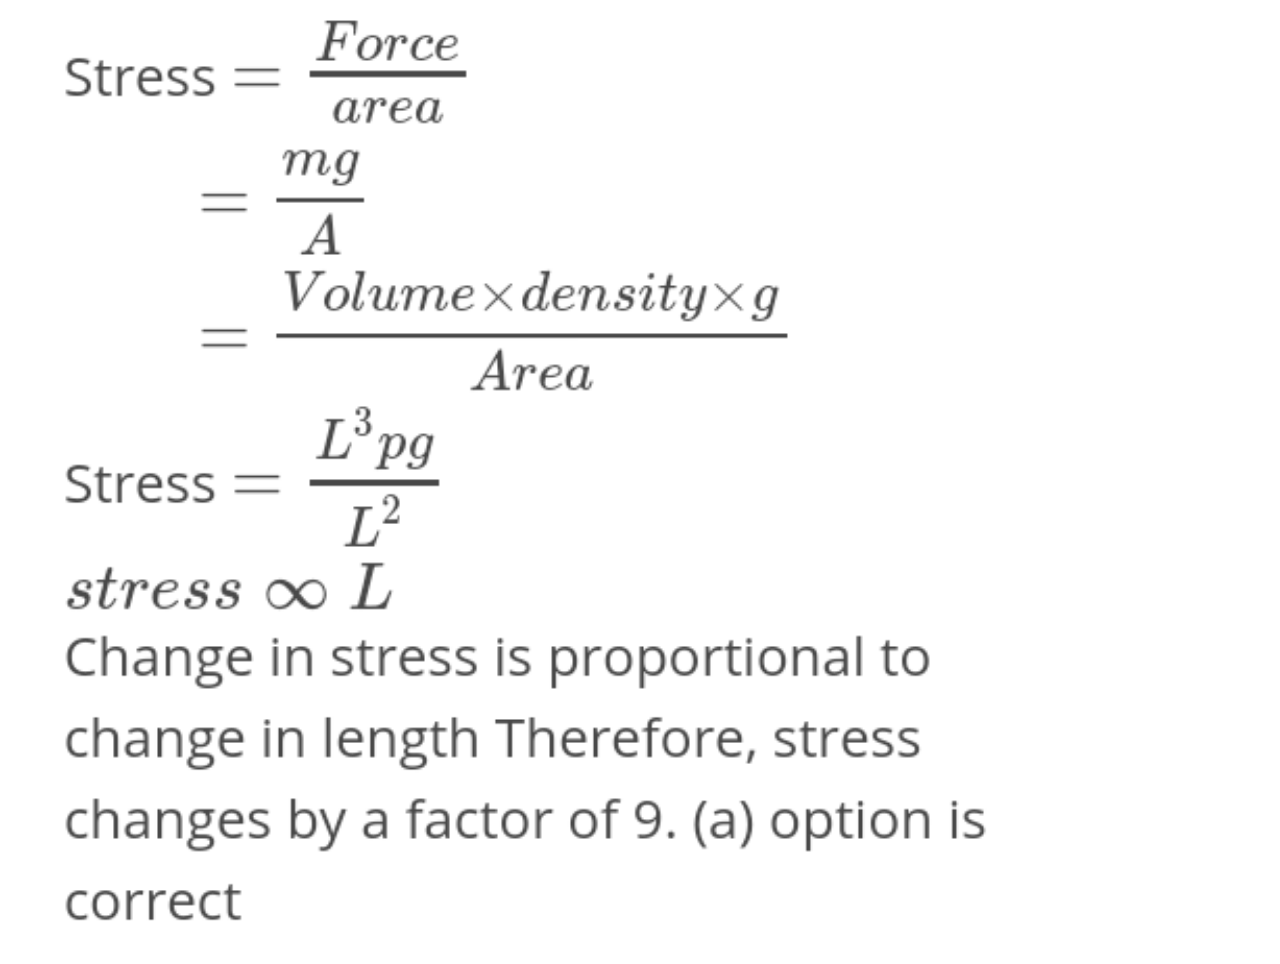 A man grows into a giant such that his linear dimensions increase by a factor of 9. Assuming that his density remains same, the stress in the leg will change by a factor of :